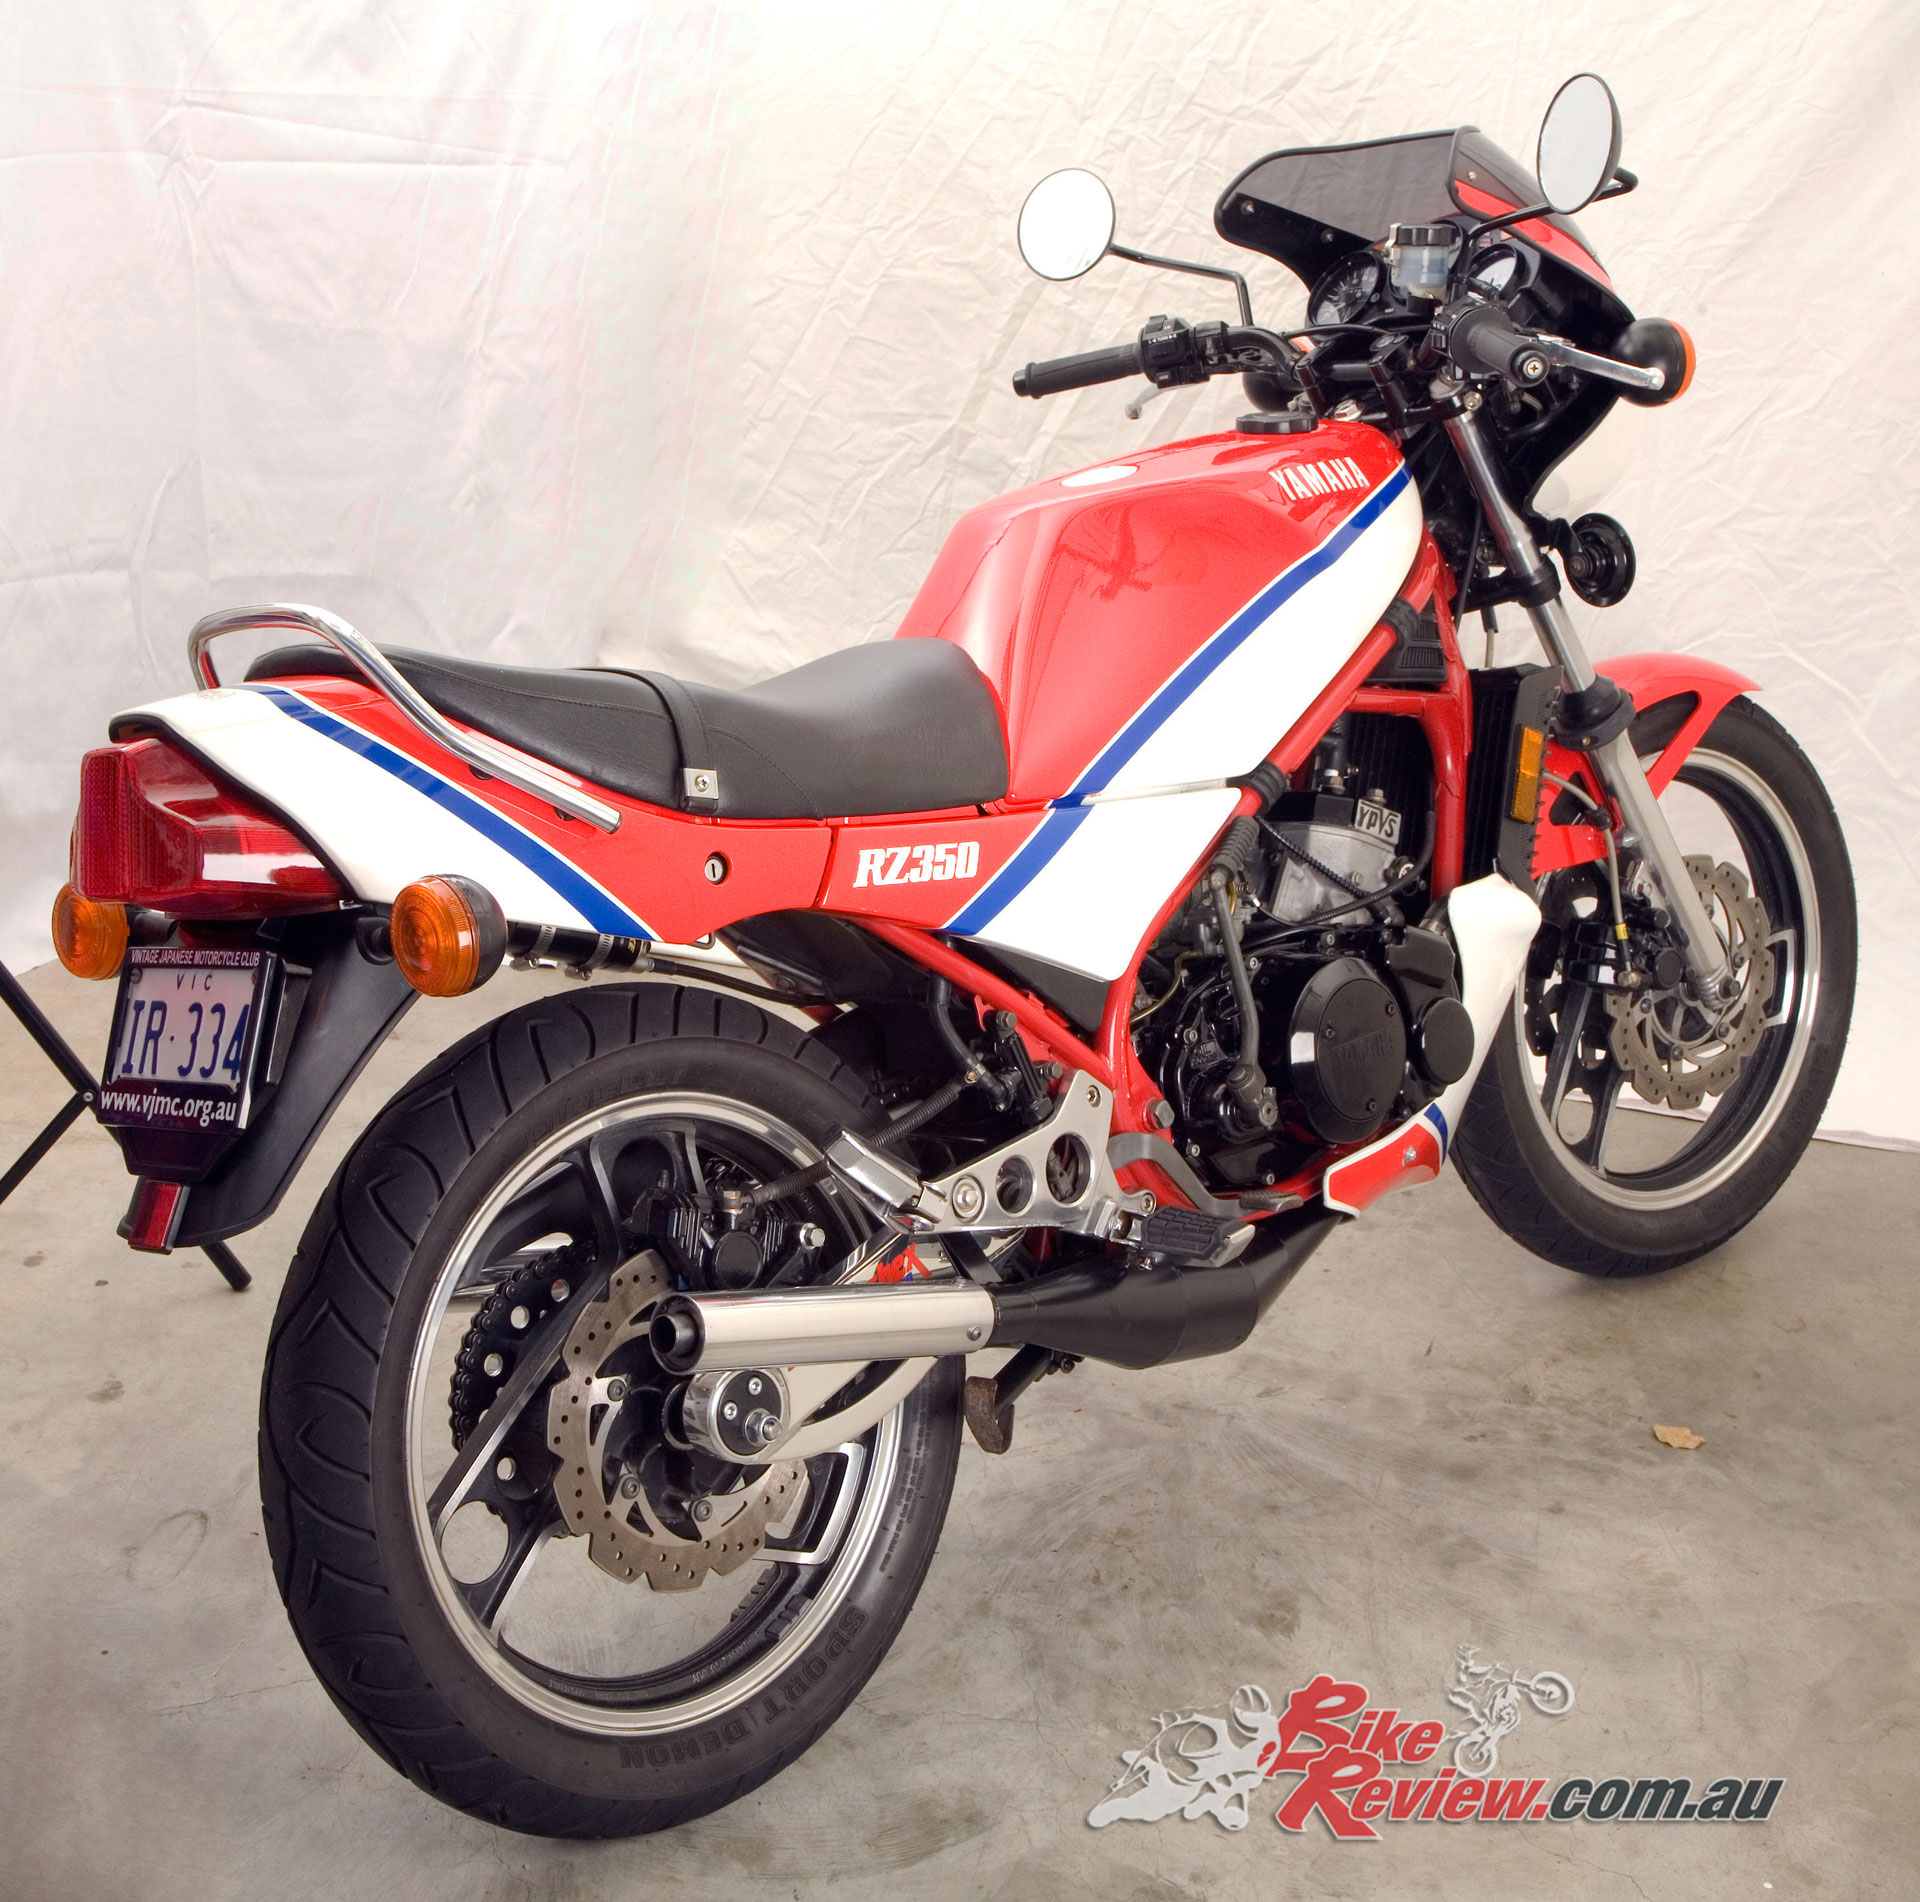 Used Bike: Yamaha RZ350 - Bike Review